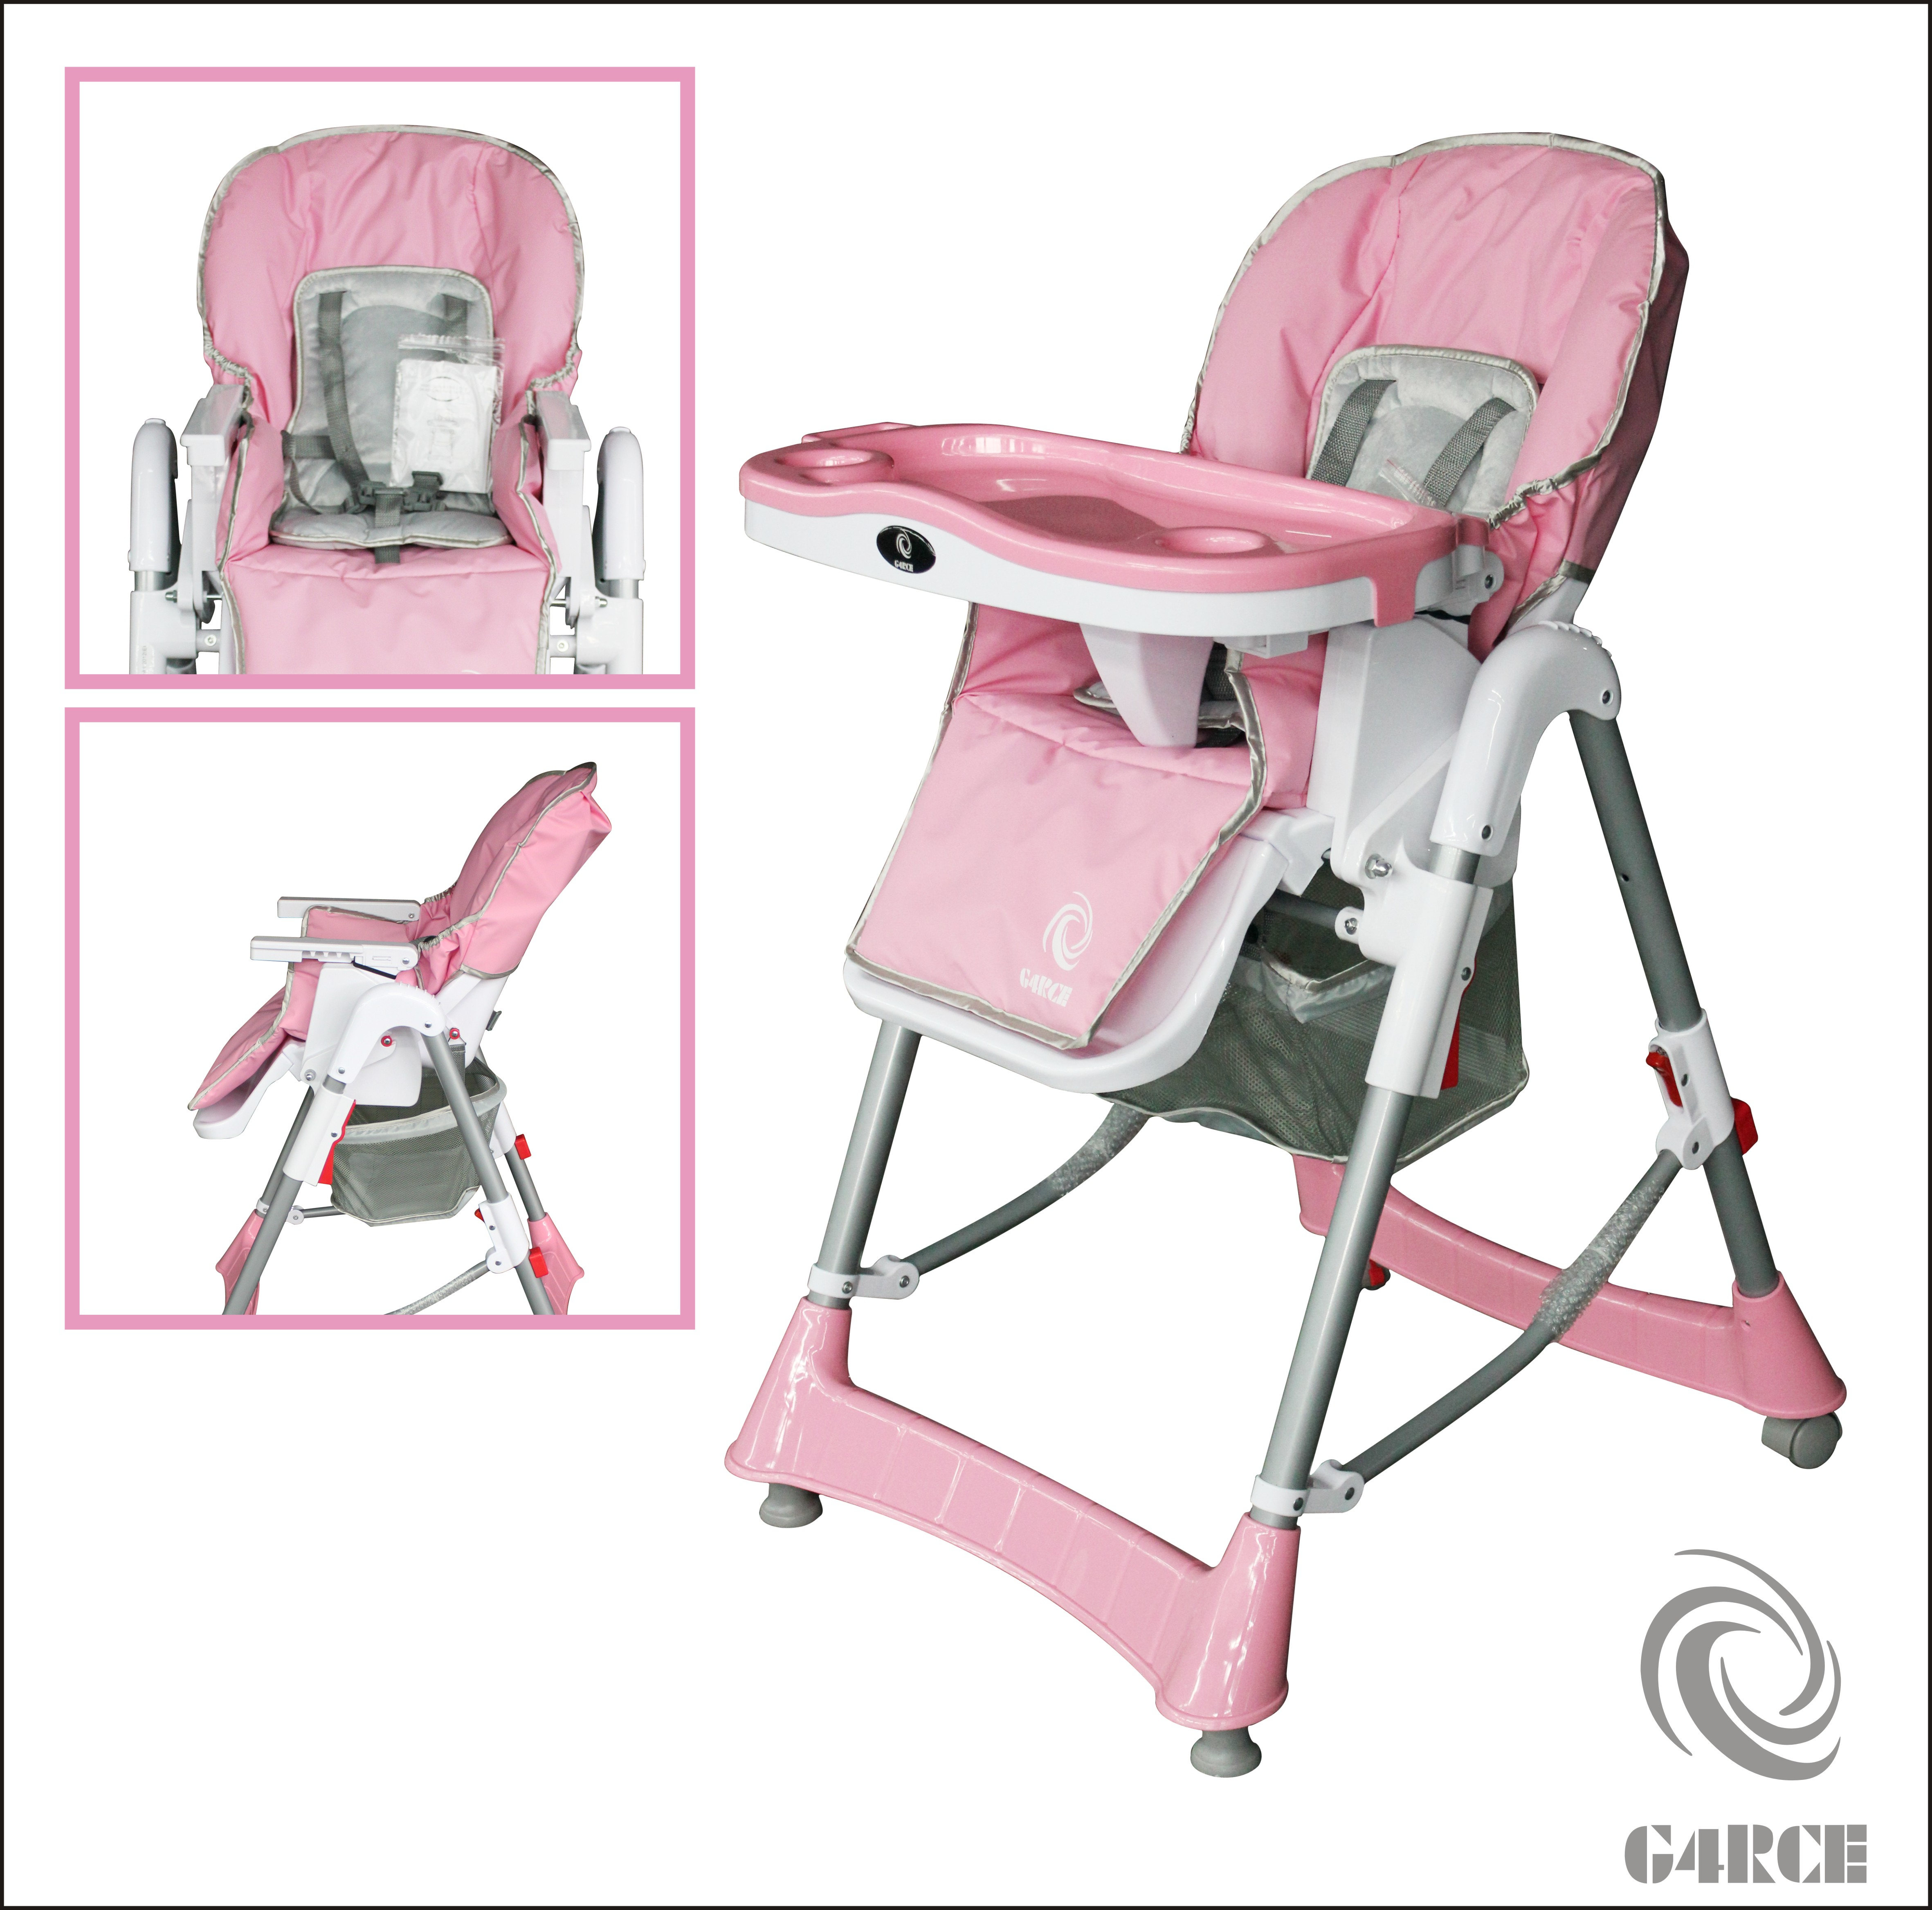 Click on the Image to Enlarge  sc 1 st  eBay & G4RCE Foldable 3 IN 1 Baby Toddler Infant Highchair Feeding ... islam-shia.org